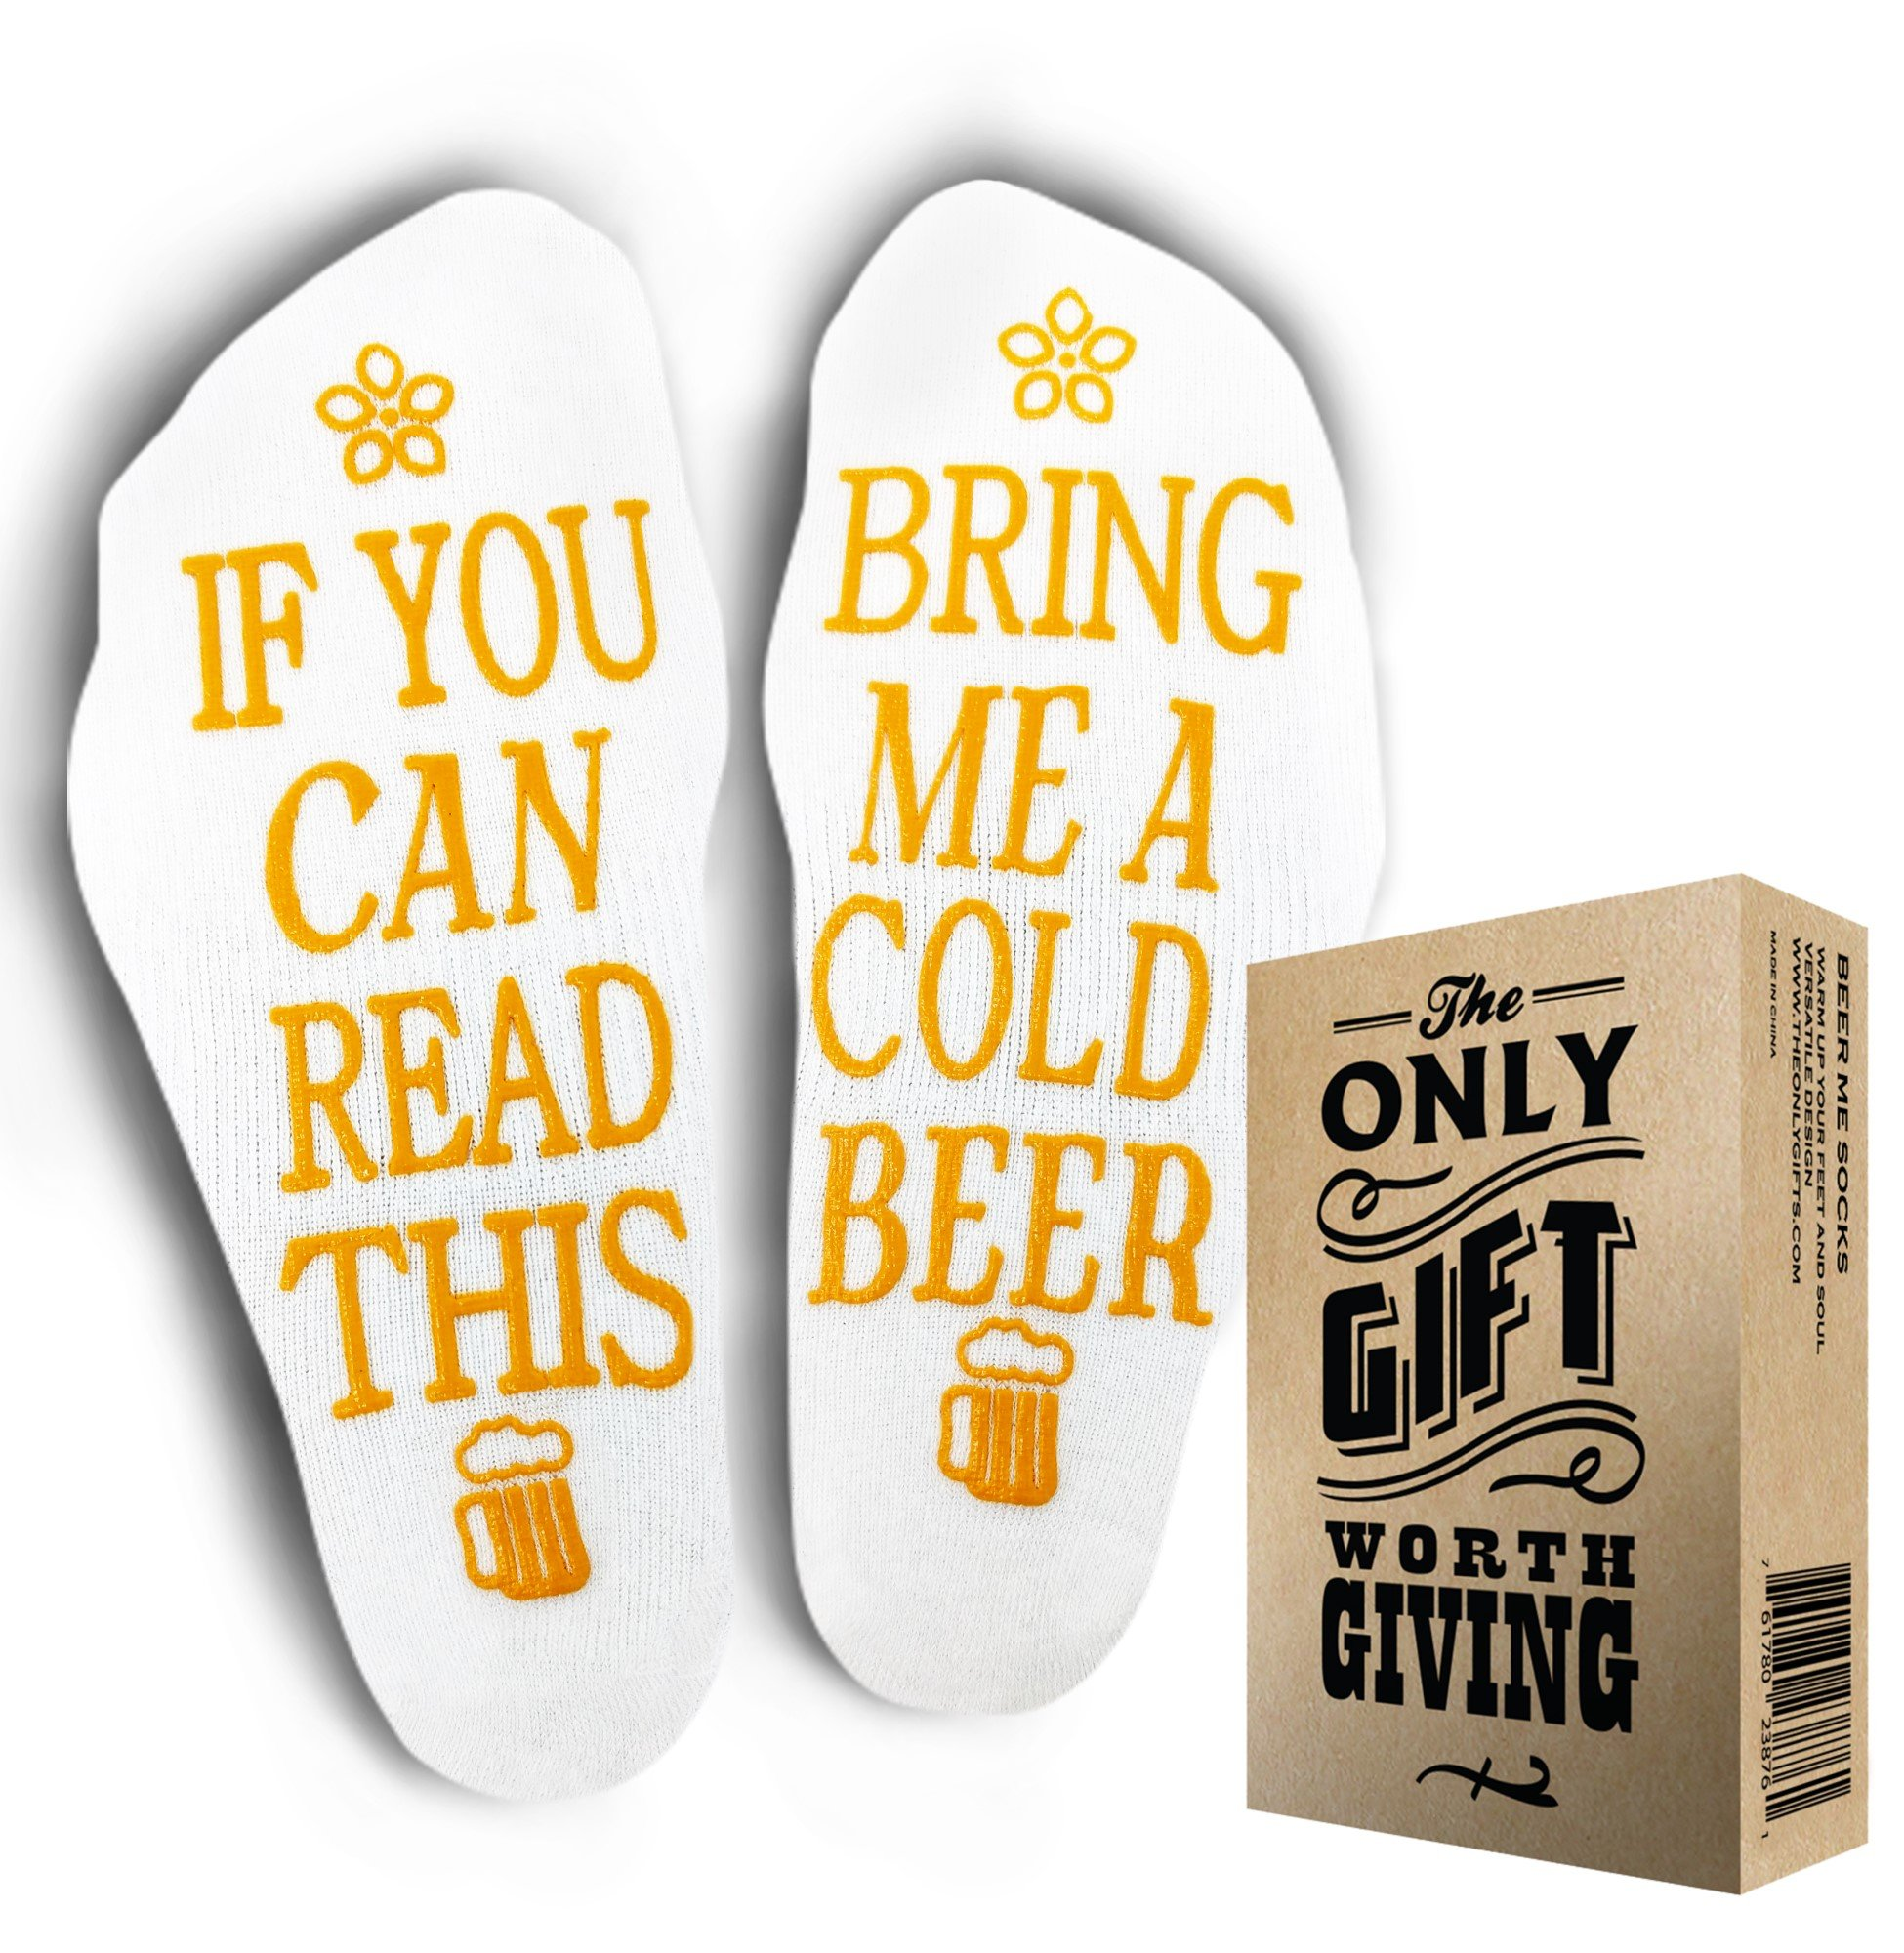 BEER SOCKS +Gift Box If you can read this bring me a cold beer